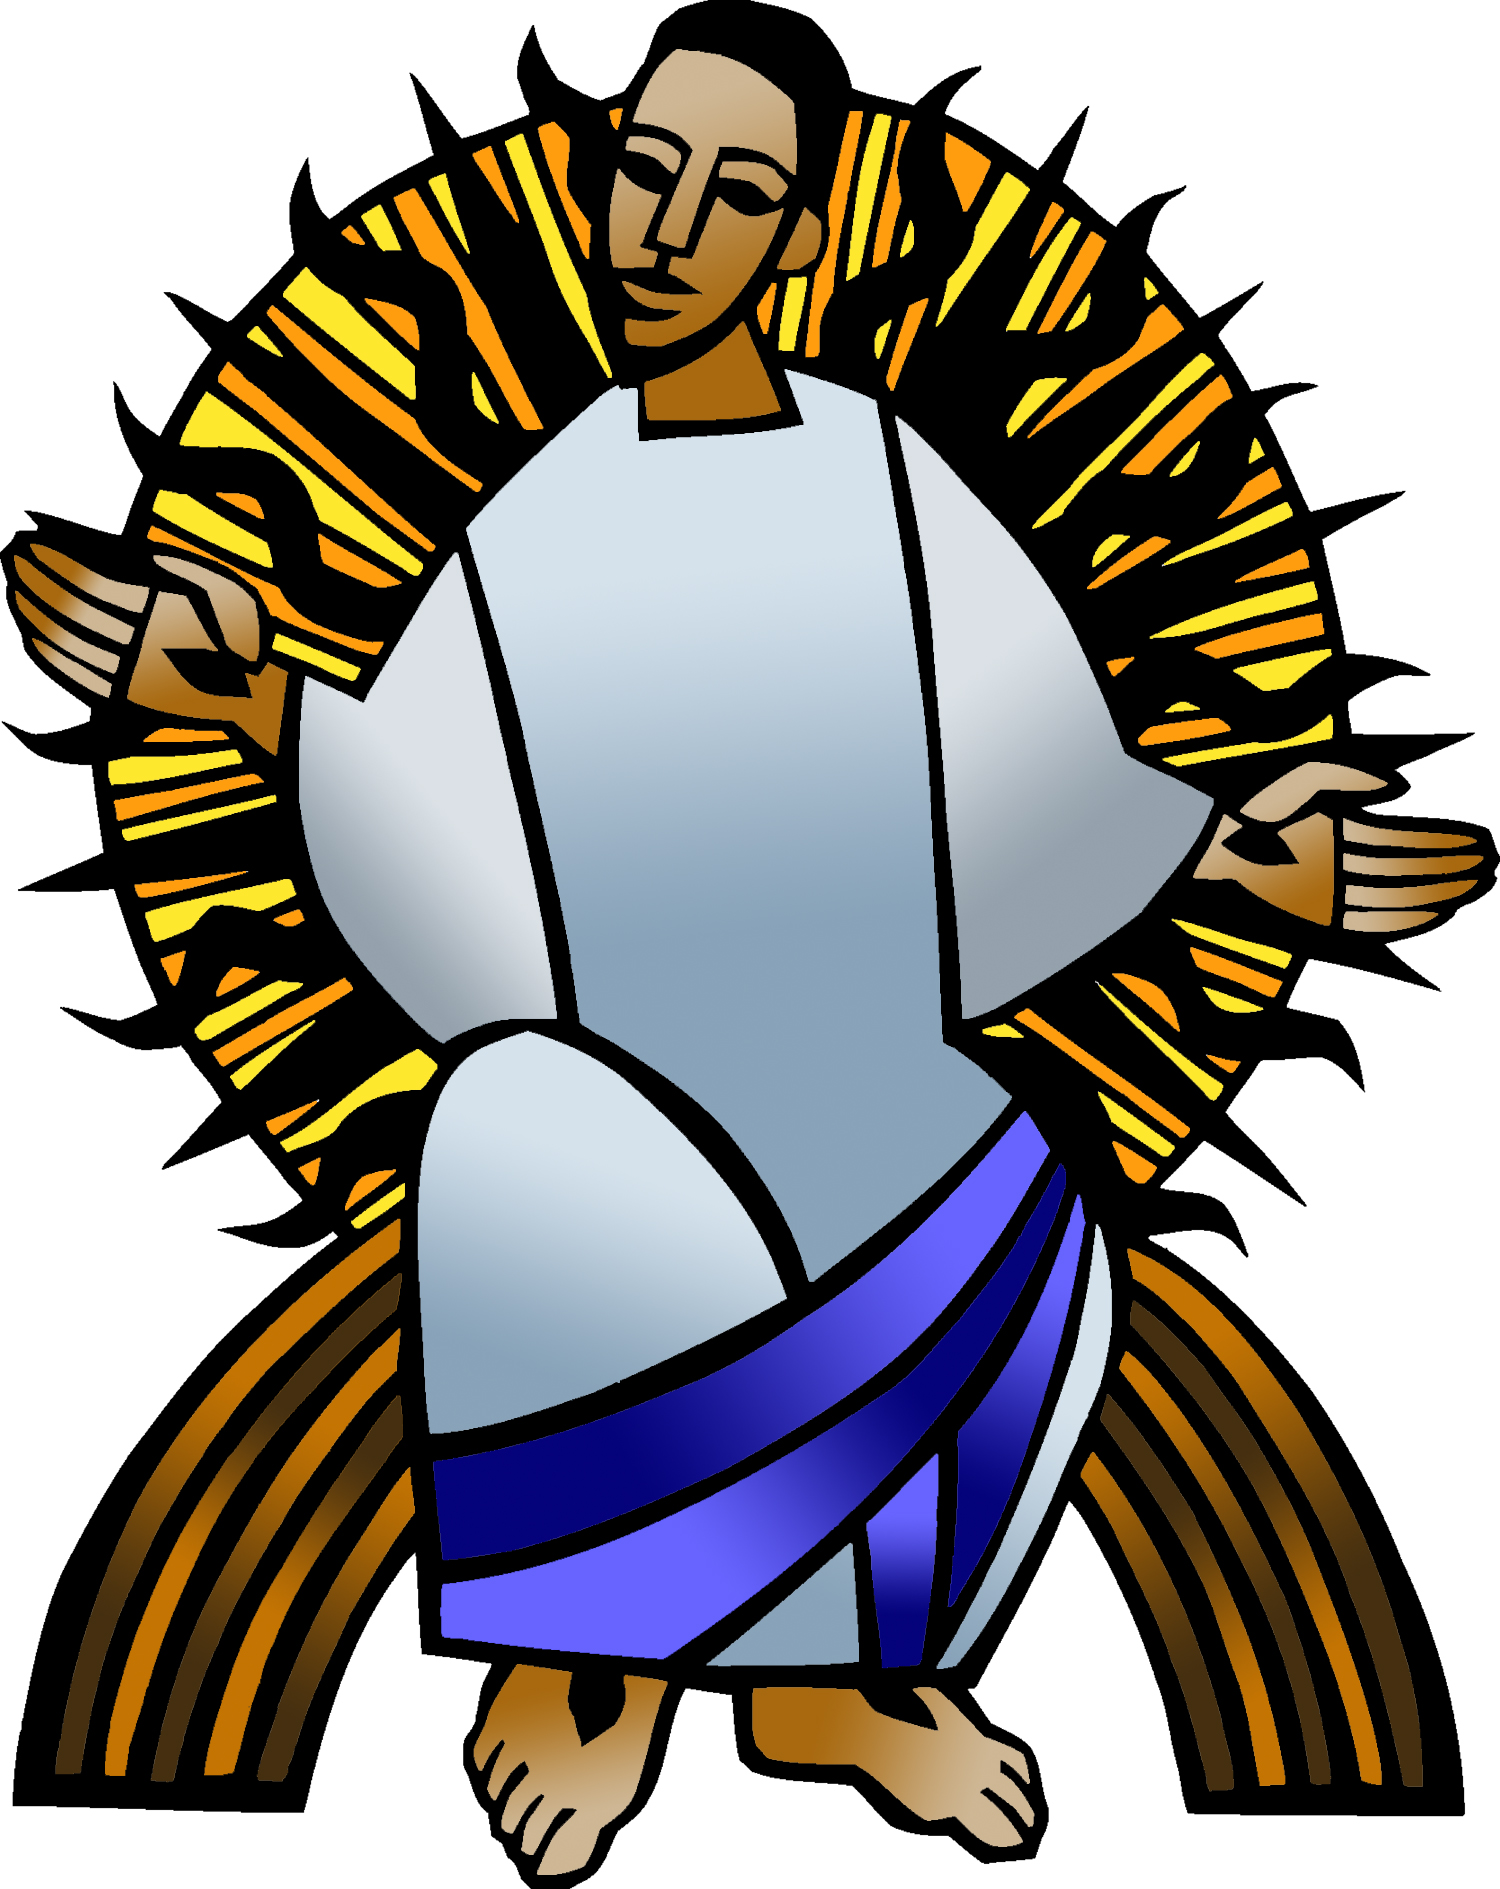 feast of christ the king year a 2017 171 gospel reflection